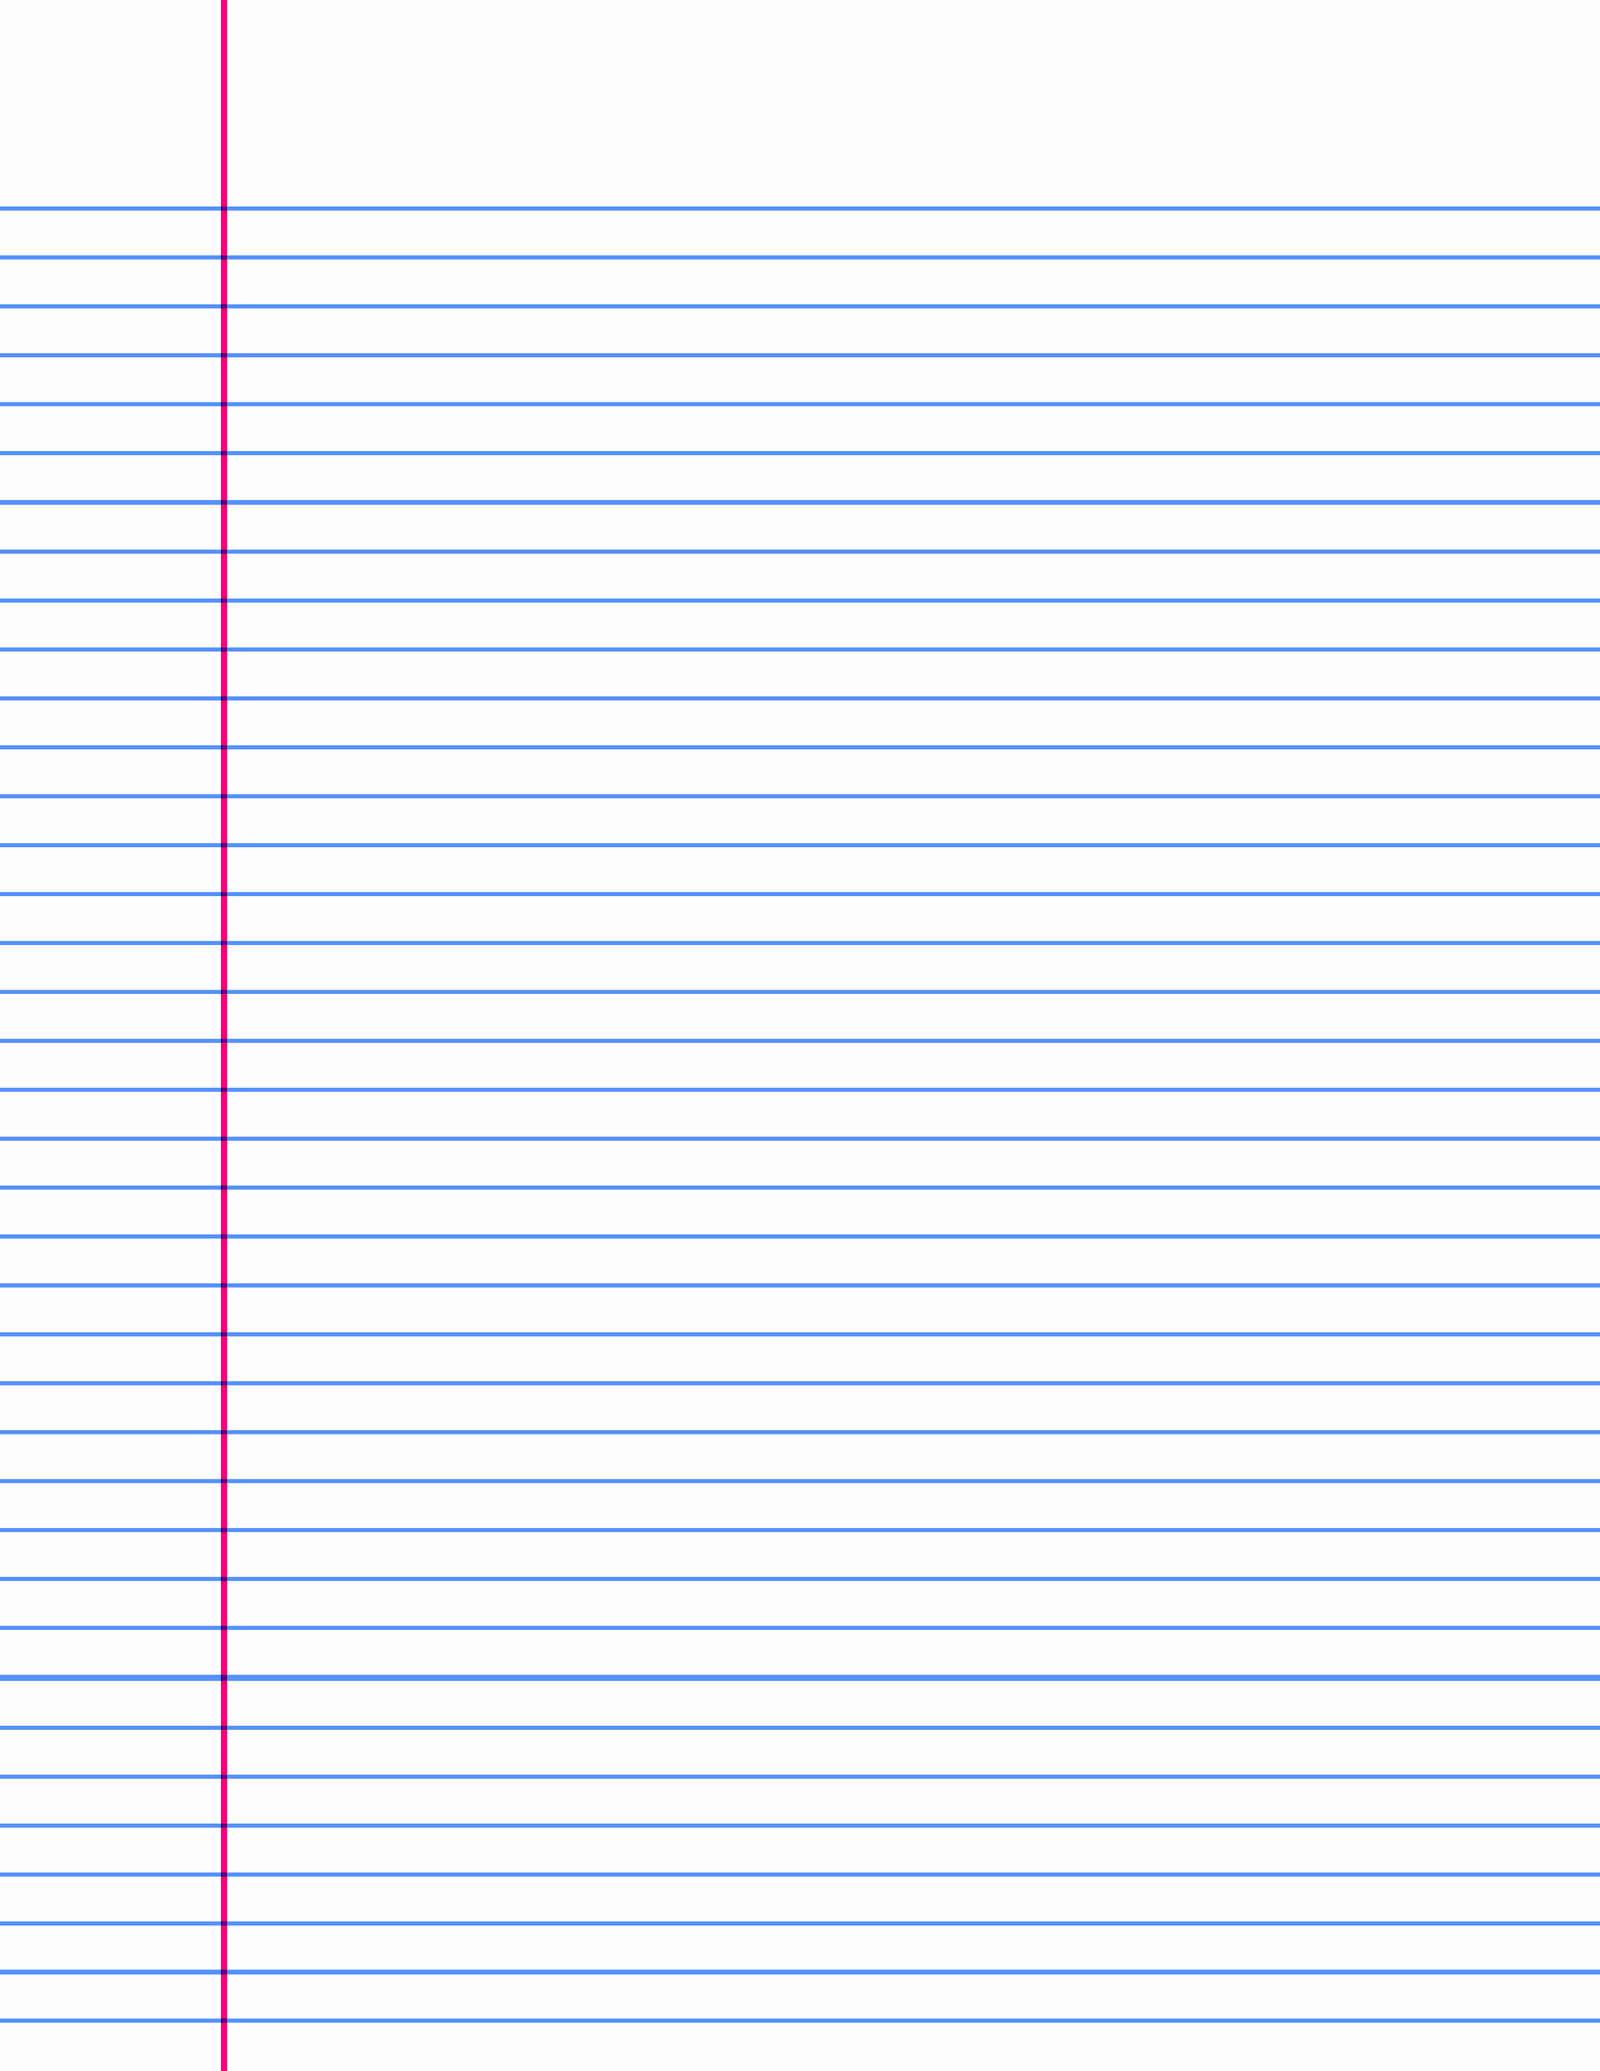 Lined Paper College Ruled Fresh A4 Lined Paper Image Lined Paper with Blue Lines College